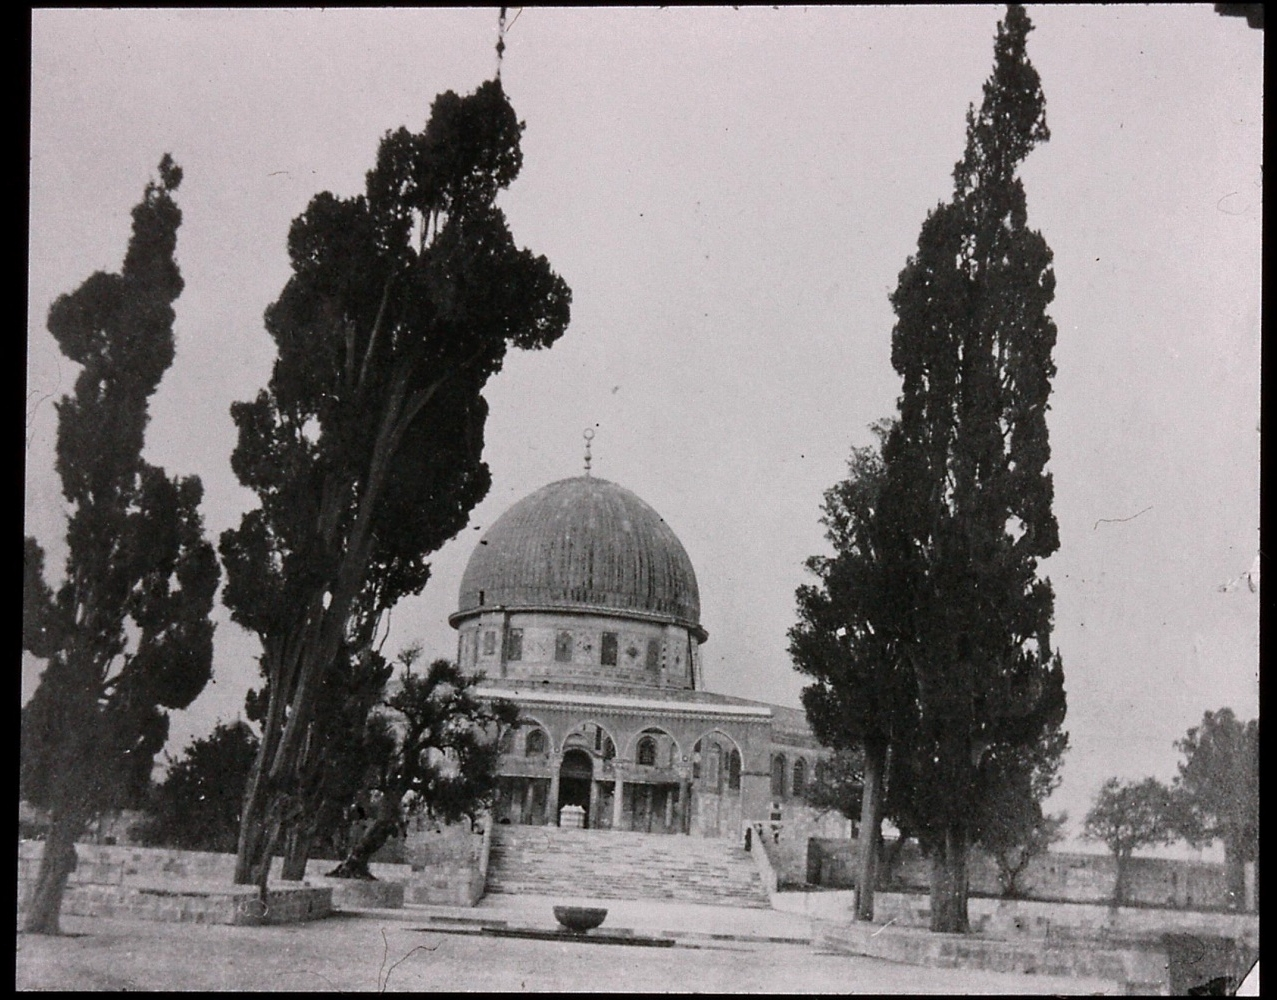 Gertrude Bell's photograph of 'the Mosque of Omar' (the Dome of the Rock), December 1899. Catalogue number A55.